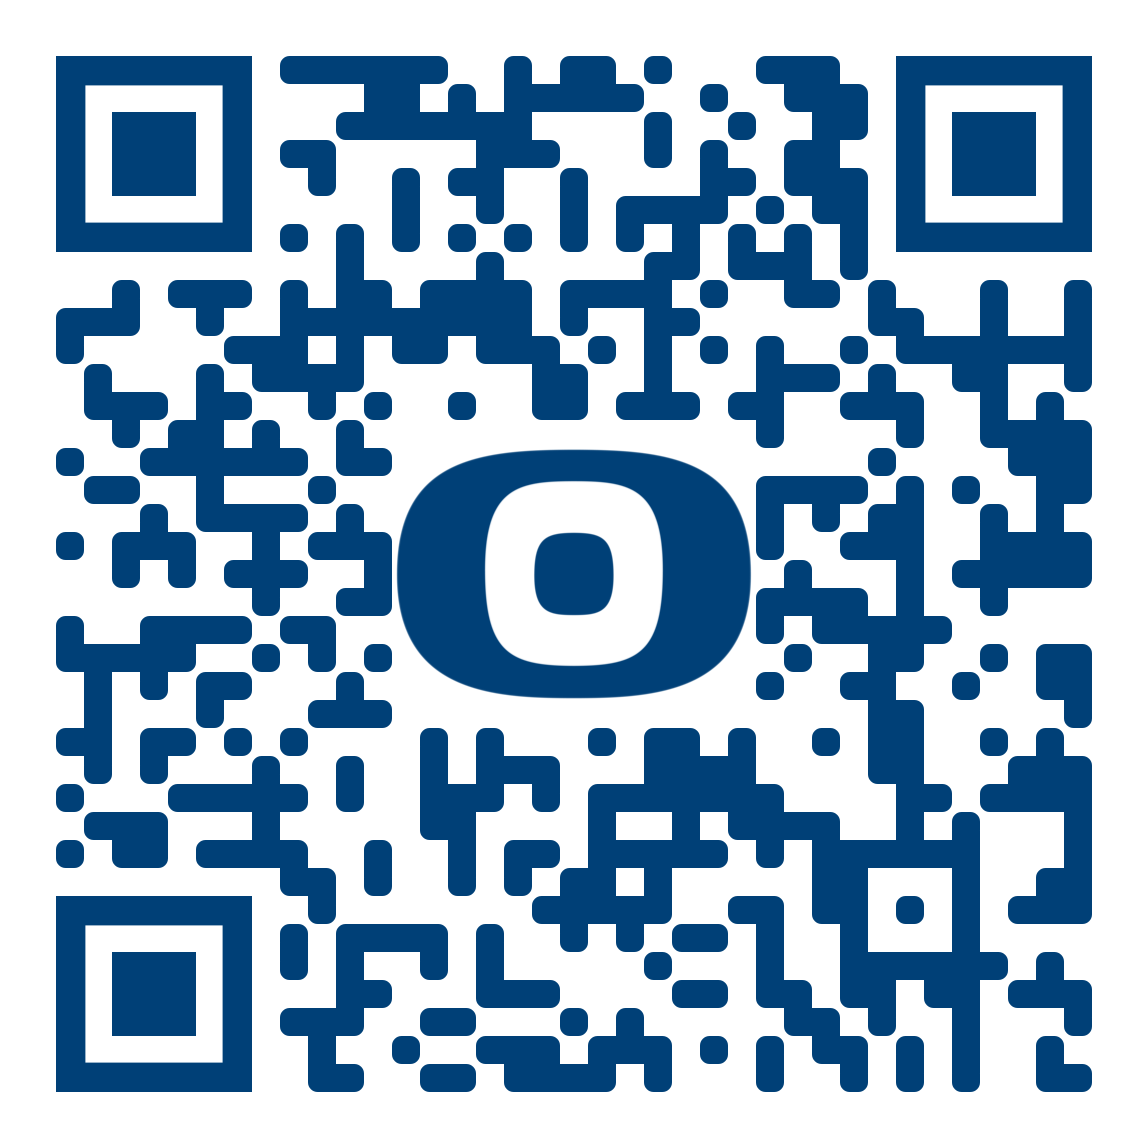 QR code to download OmniFarm app